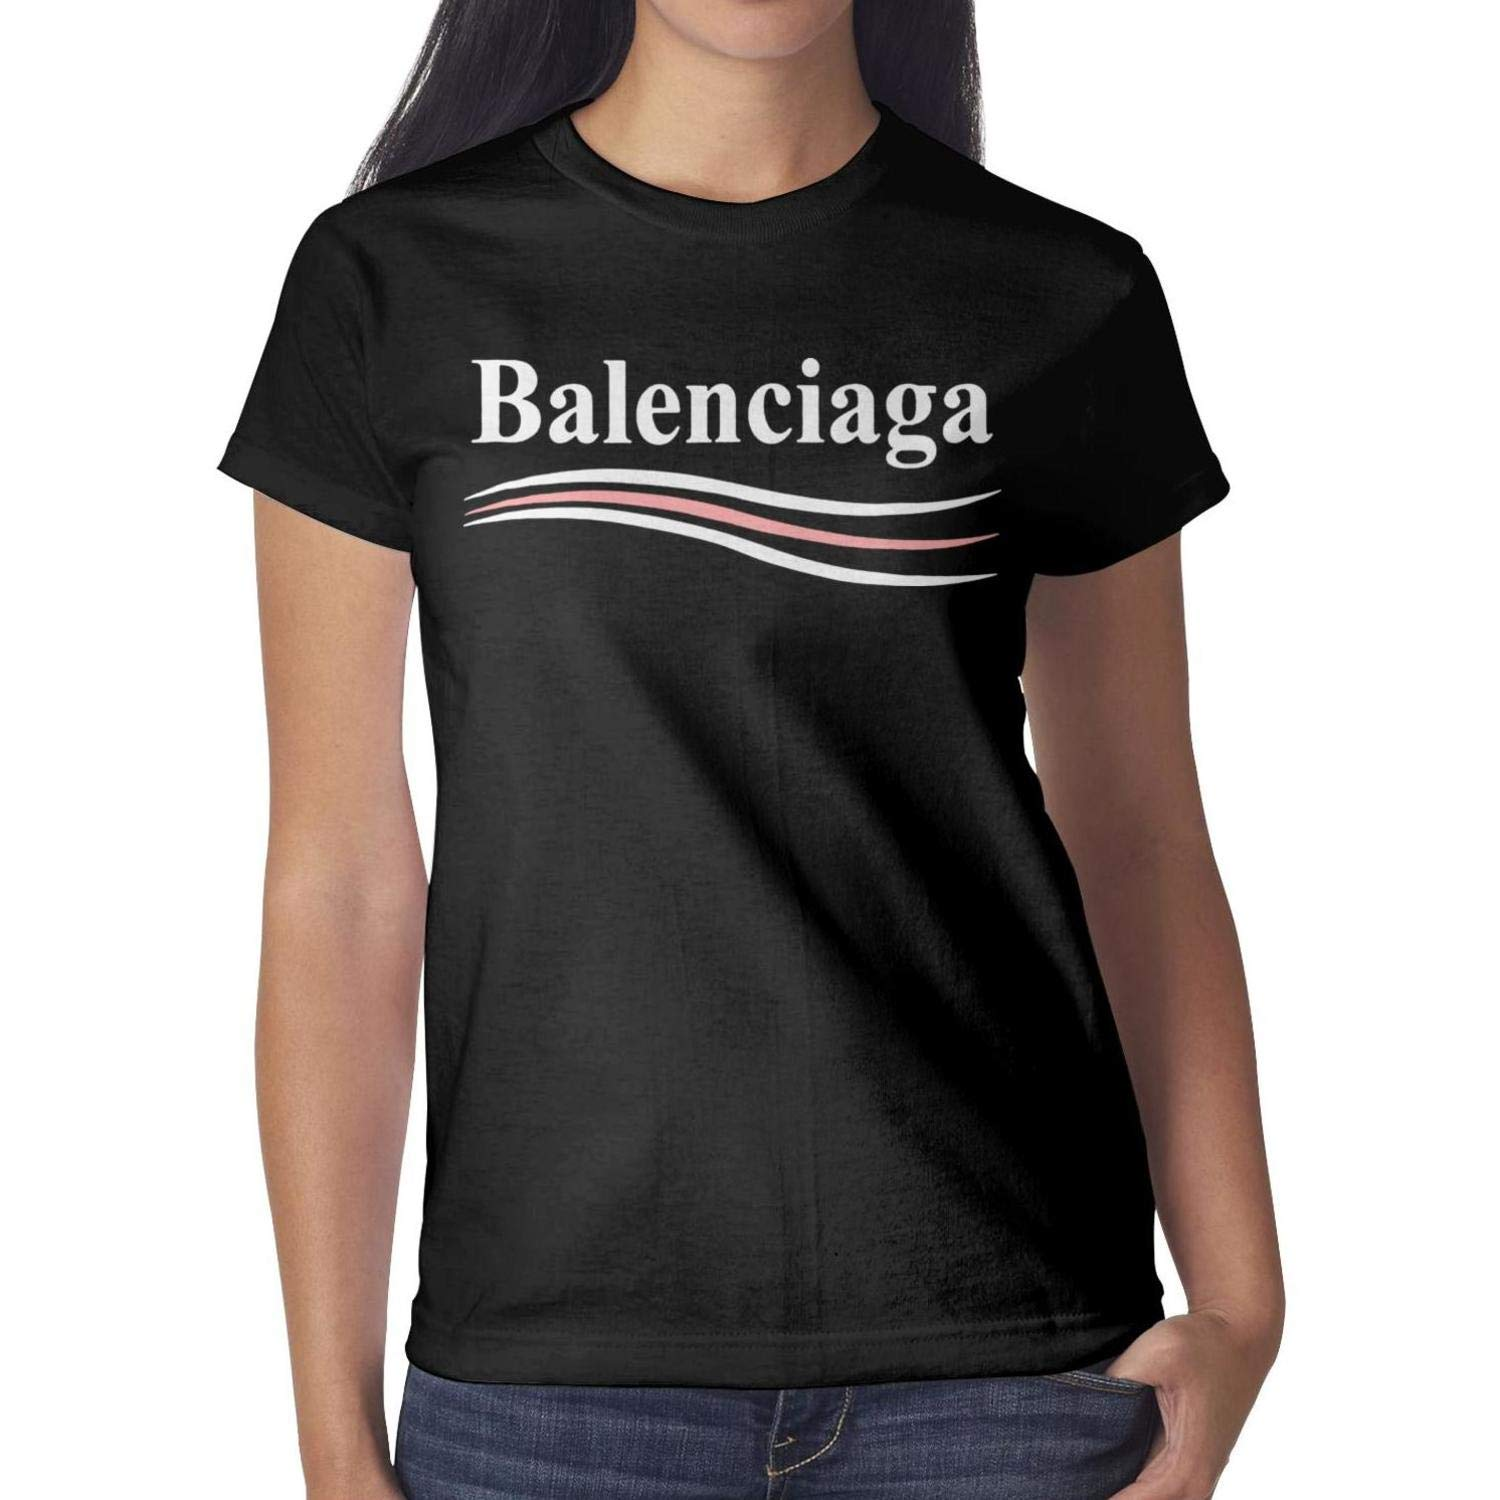 732934b3 ShaLAFUGUI Loose-Fit Women's T Shirt Cable Gift for Balenciaga T-Shirt  Assorted at Amazon Women's Clothing store: